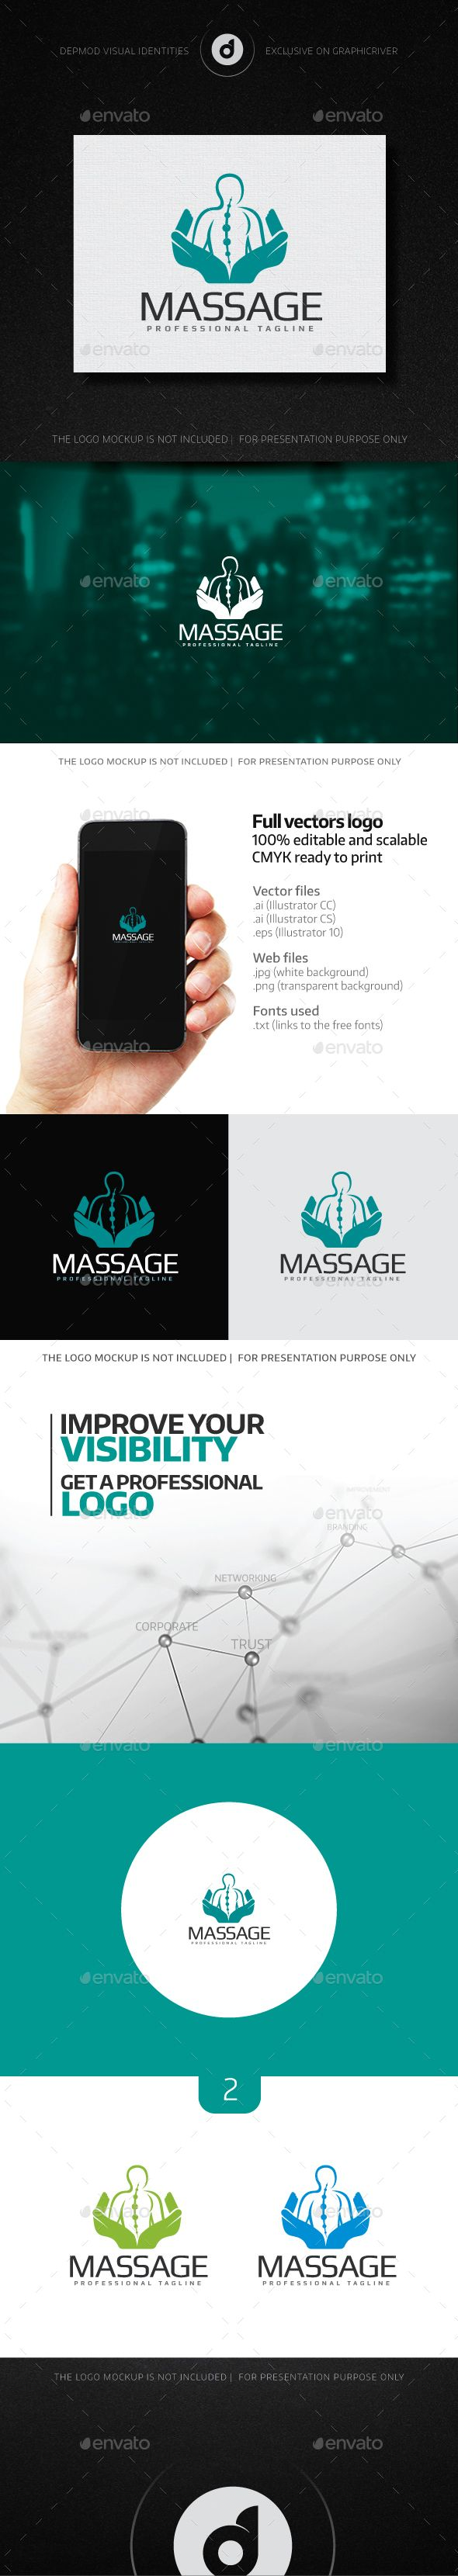 Massage Logo Template Vector EPS, AI. Download here: http://graphicriver.net/item/massage-logo/14543815?ref=ksioks